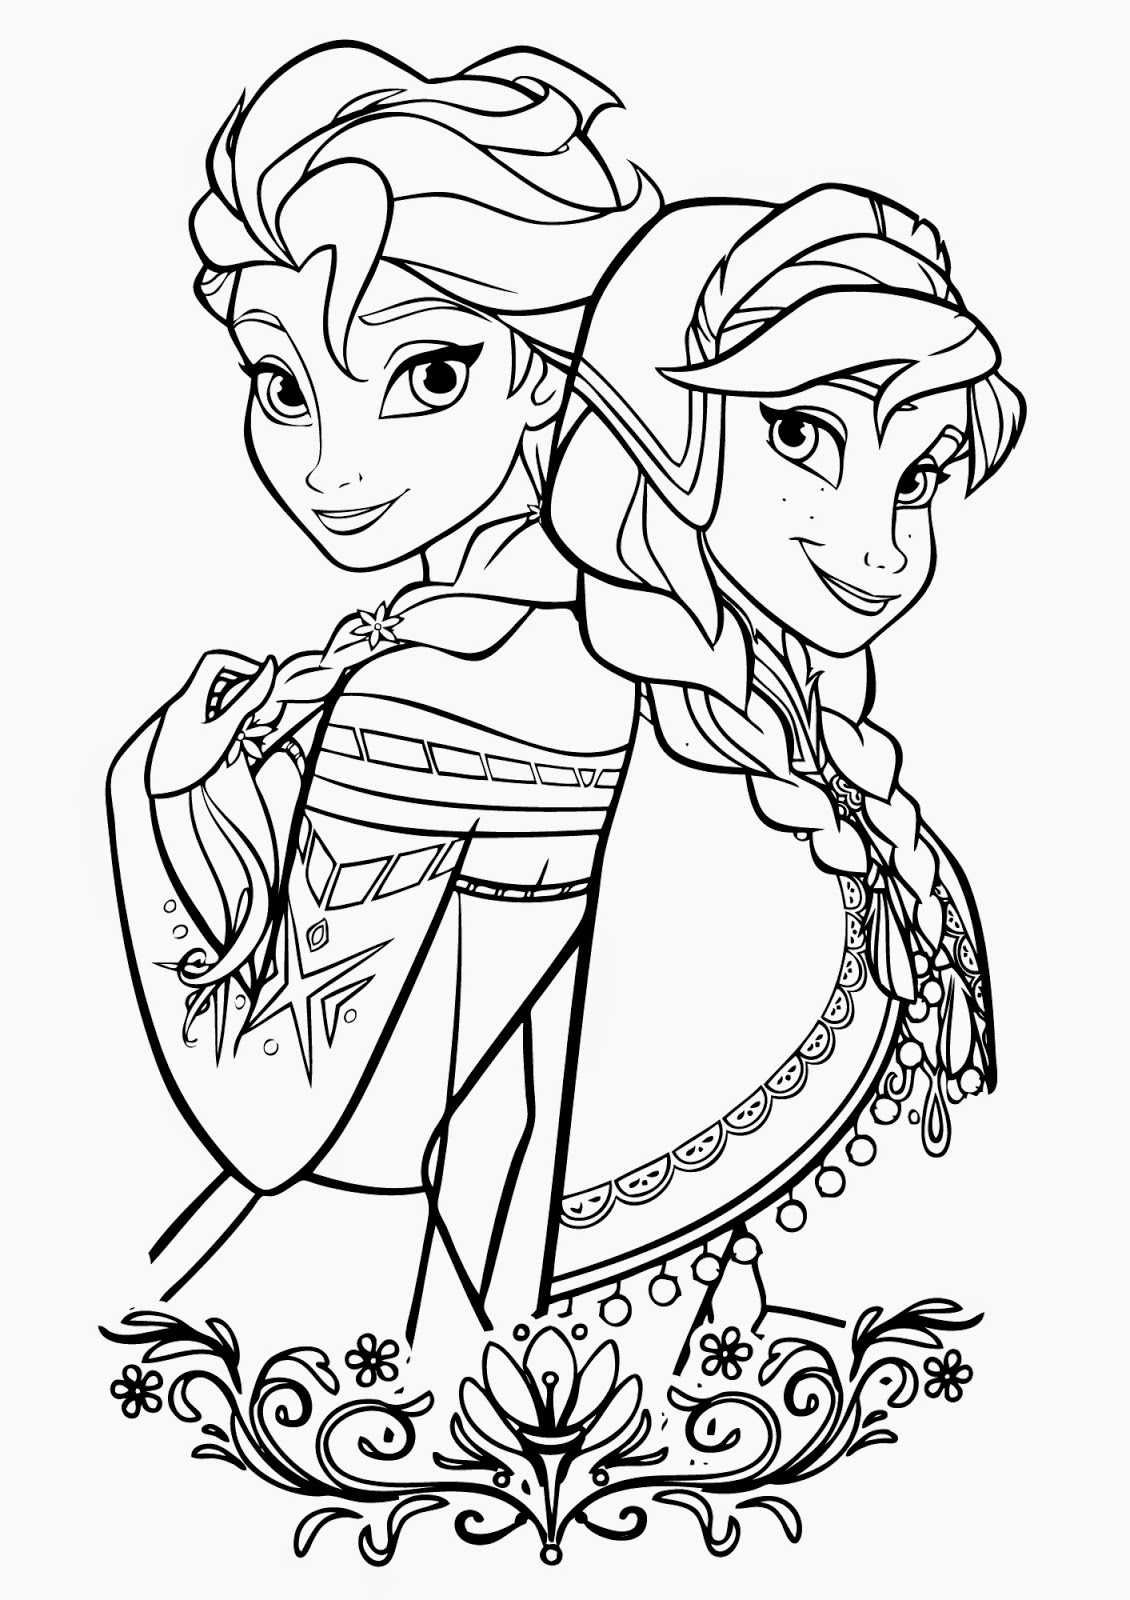 Anna And Elsa Coloring Pages Free Printable Elsa Coloring Pages For Kids  Best Coloring Pages